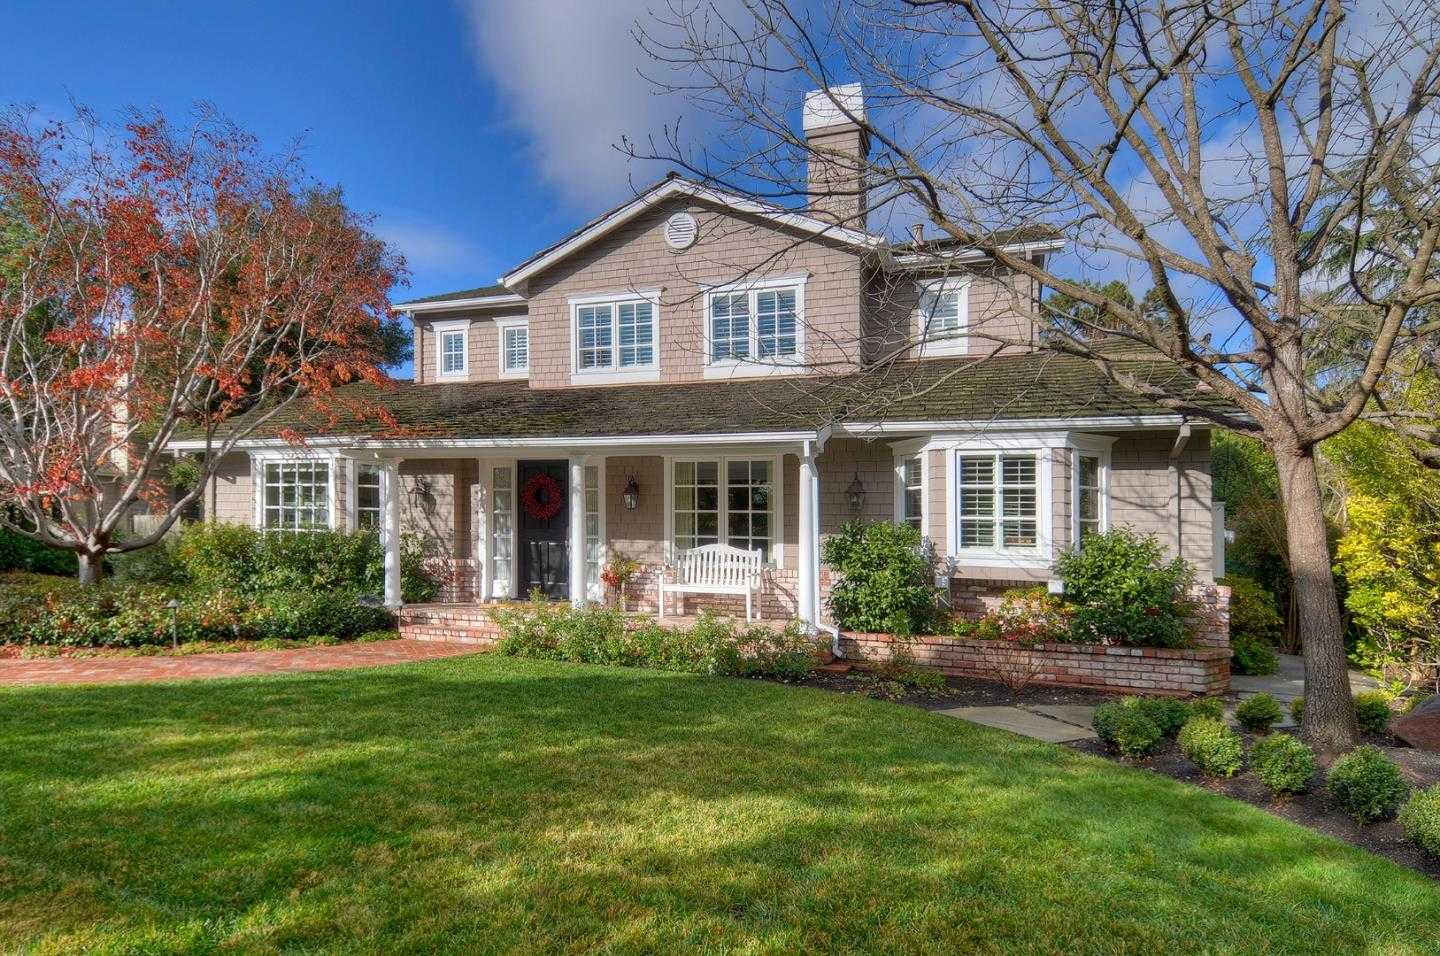 $3,898,000 - 4Br/3Ba -  for Sale in Menlo Park